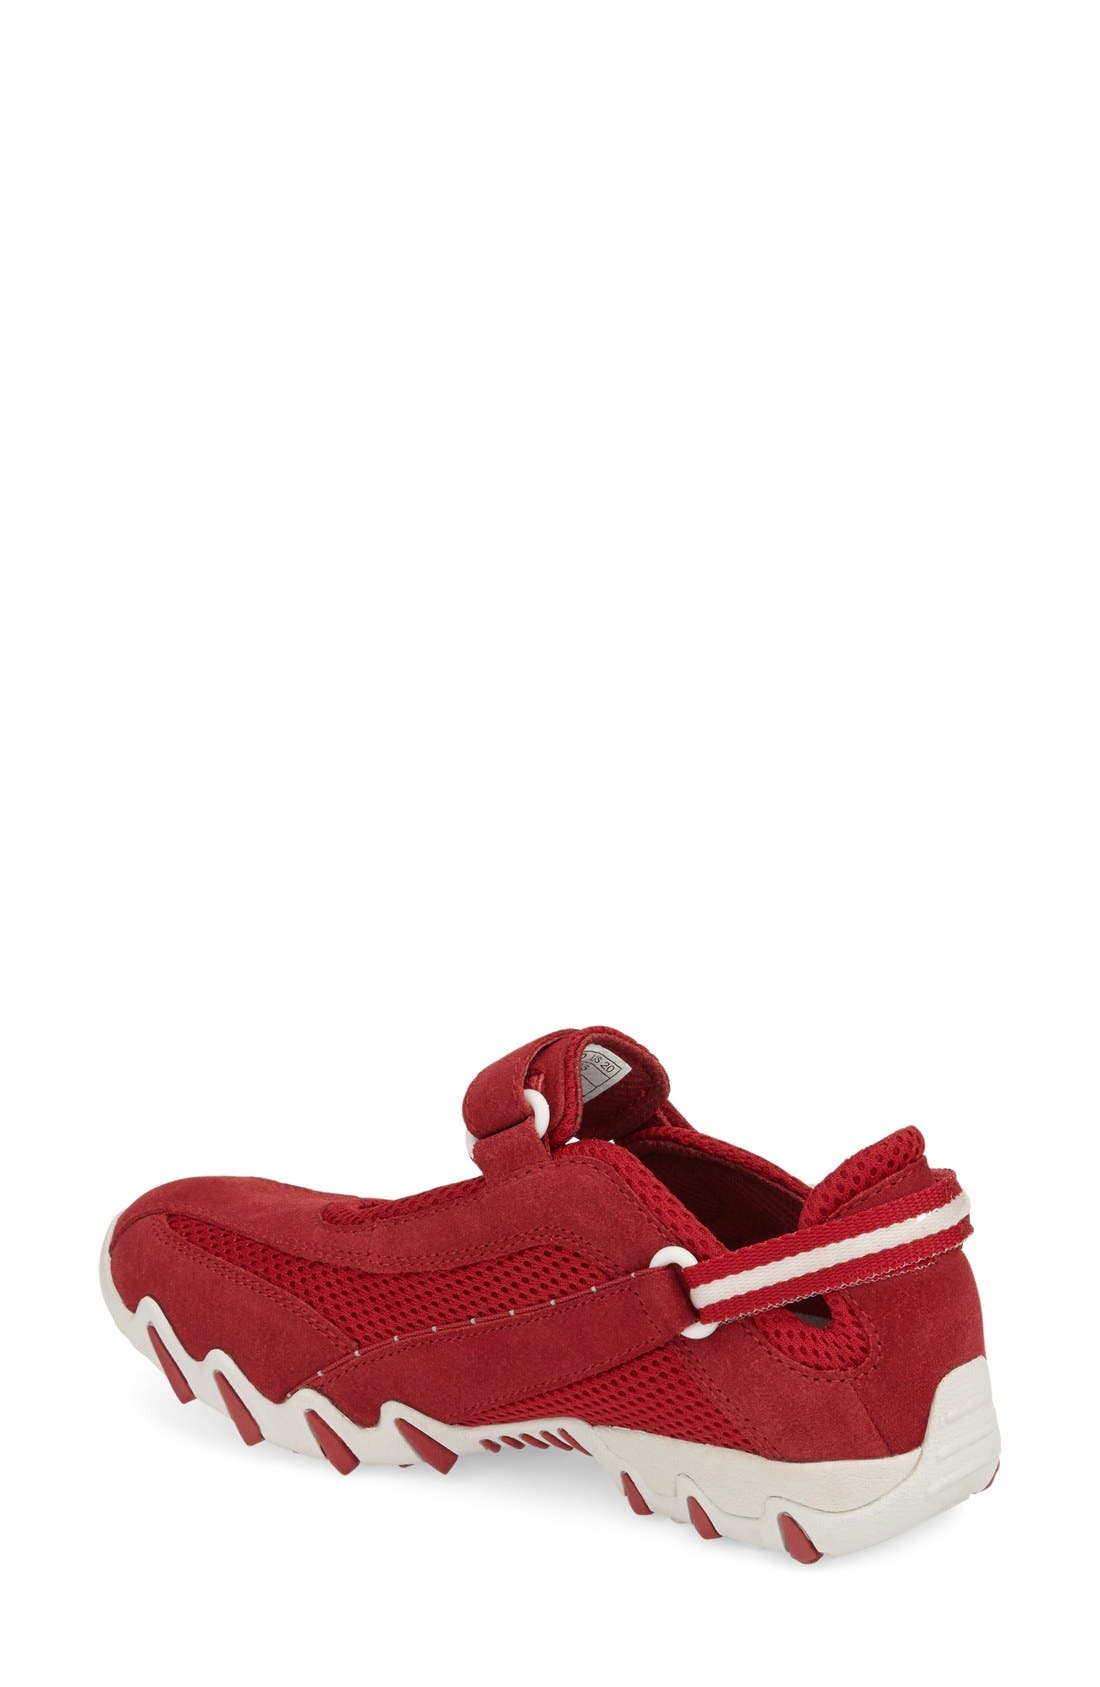 'Niro' Athletic Shoe,                             Alternate thumbnail 2, color,                             Red Suede